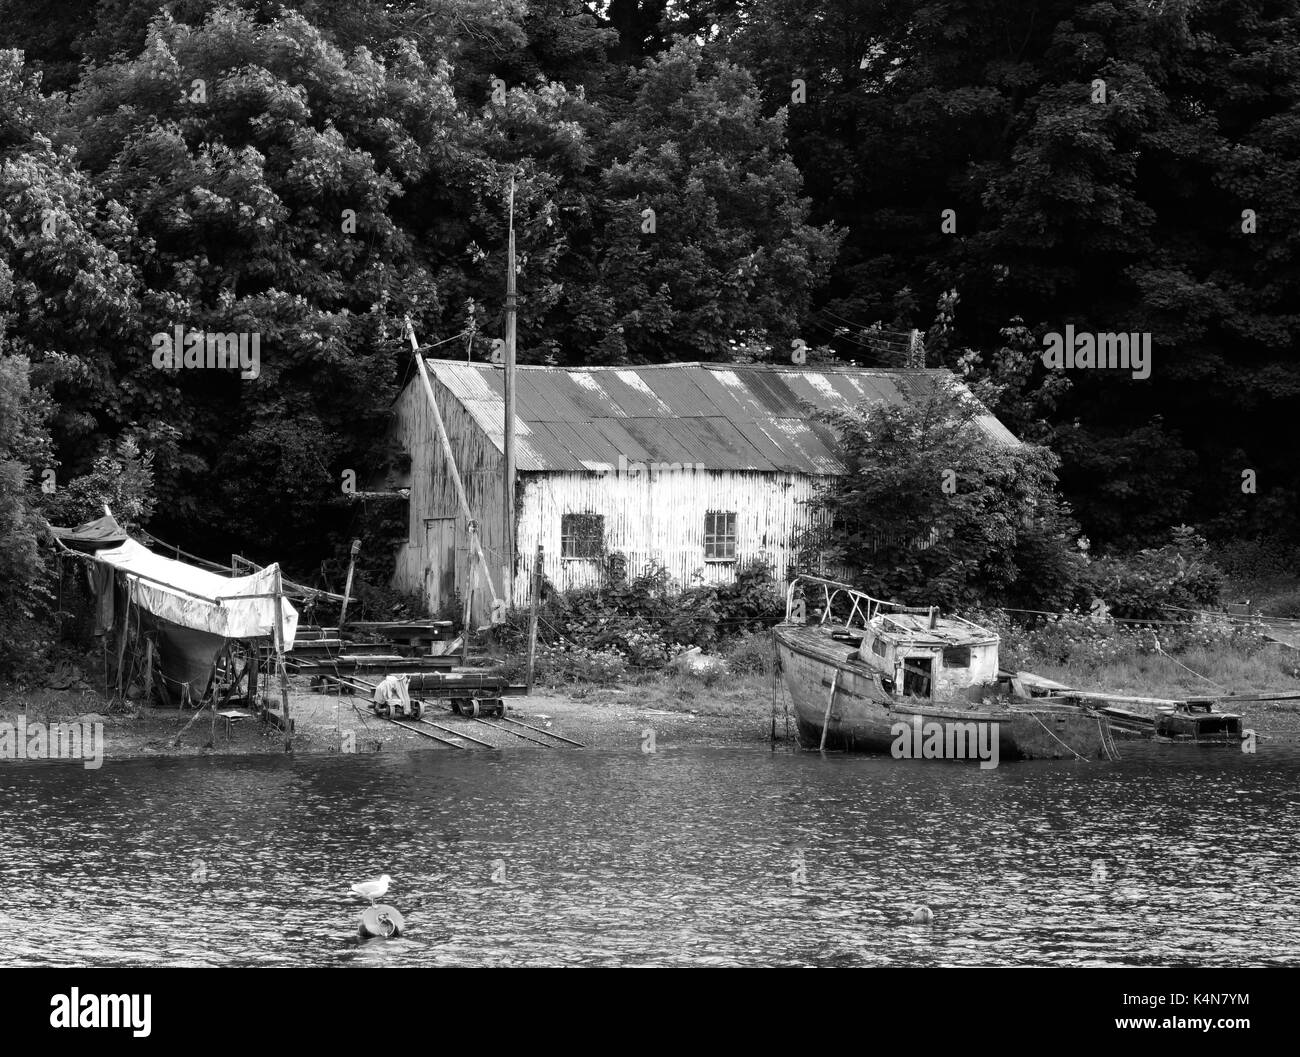 A rustic fishermans shack and boats - Stock Image